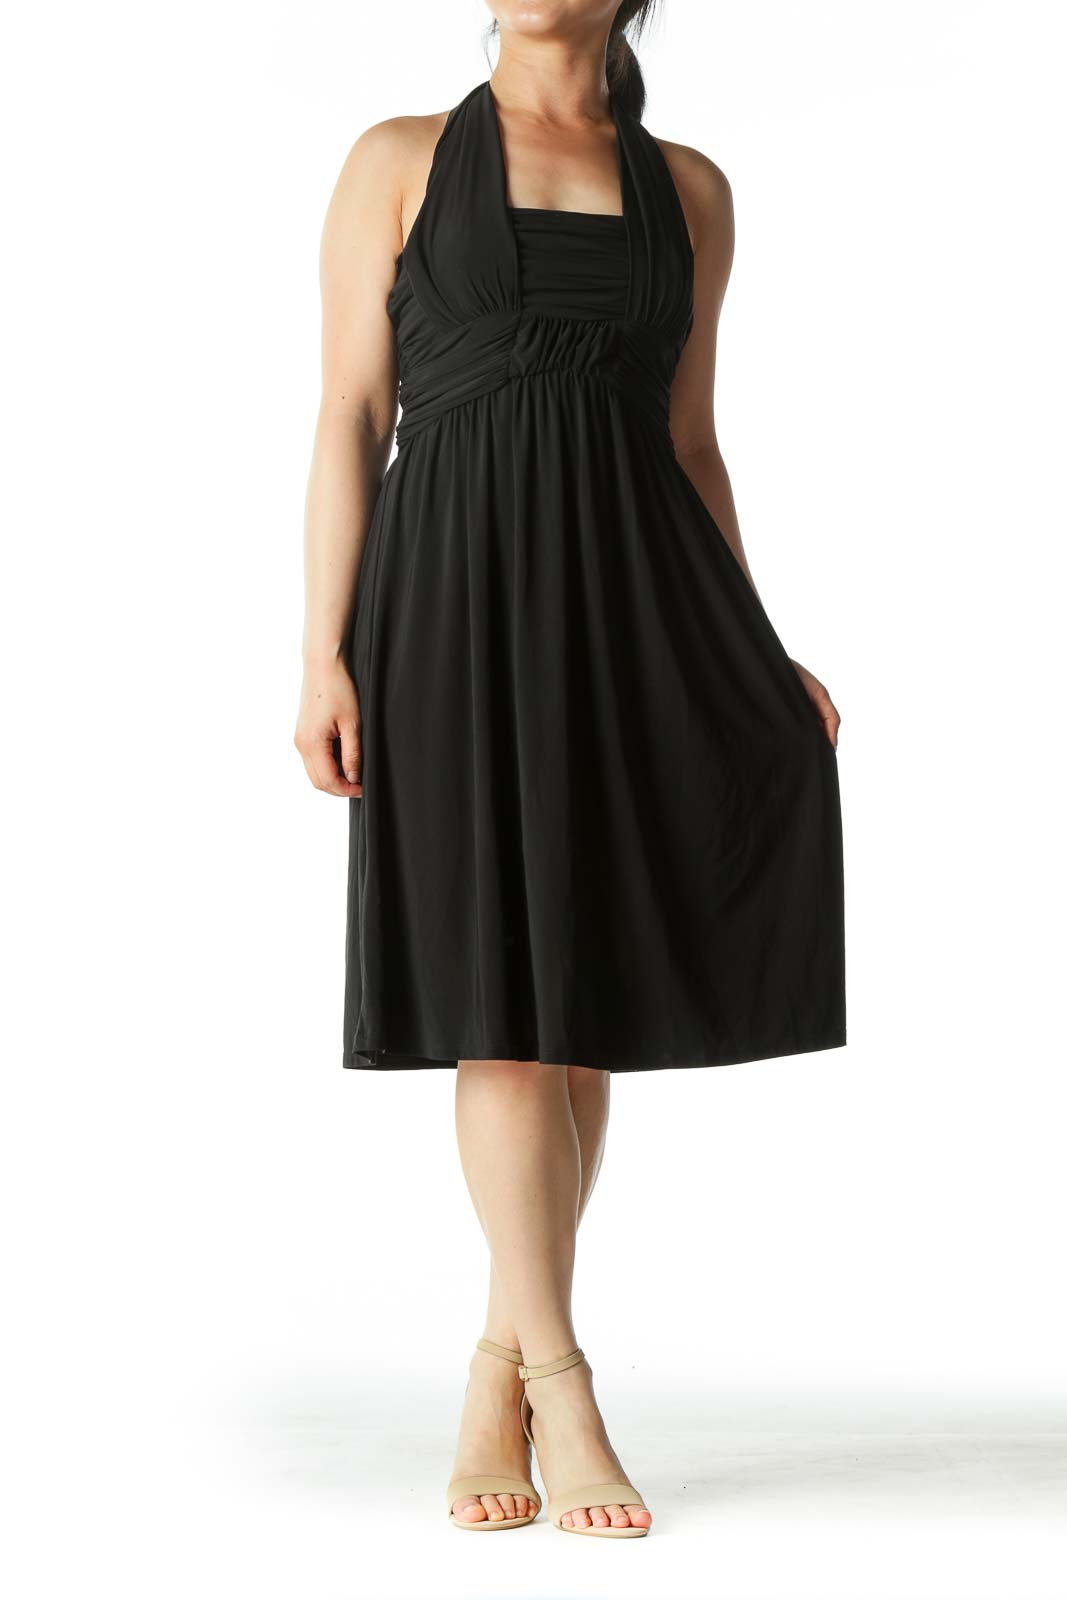 Black Stretch Scrunched Halter-Neck Cocktail Dress